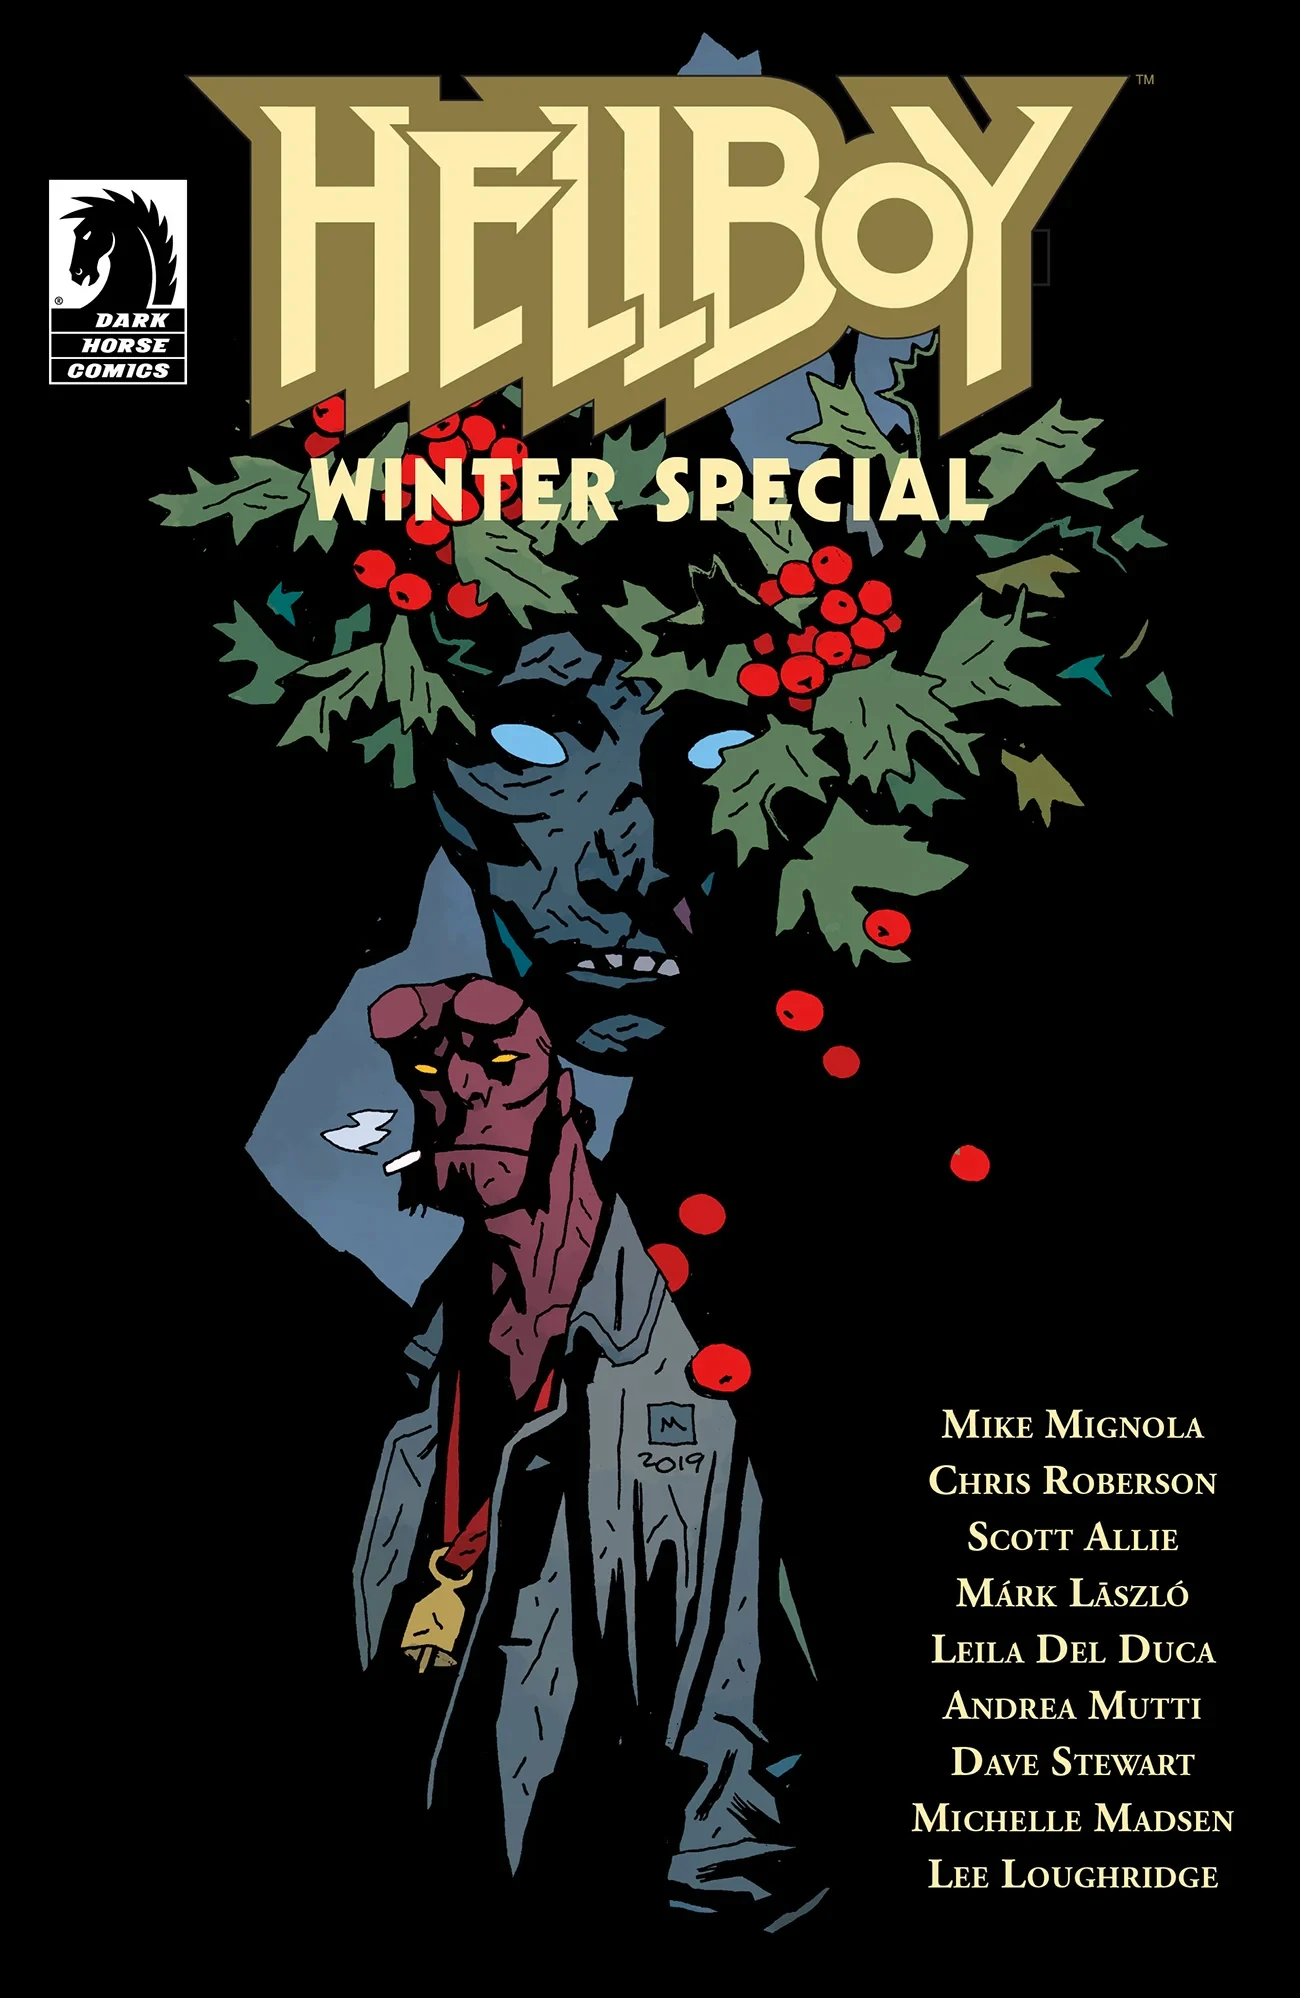 hellboy-winter_special2019